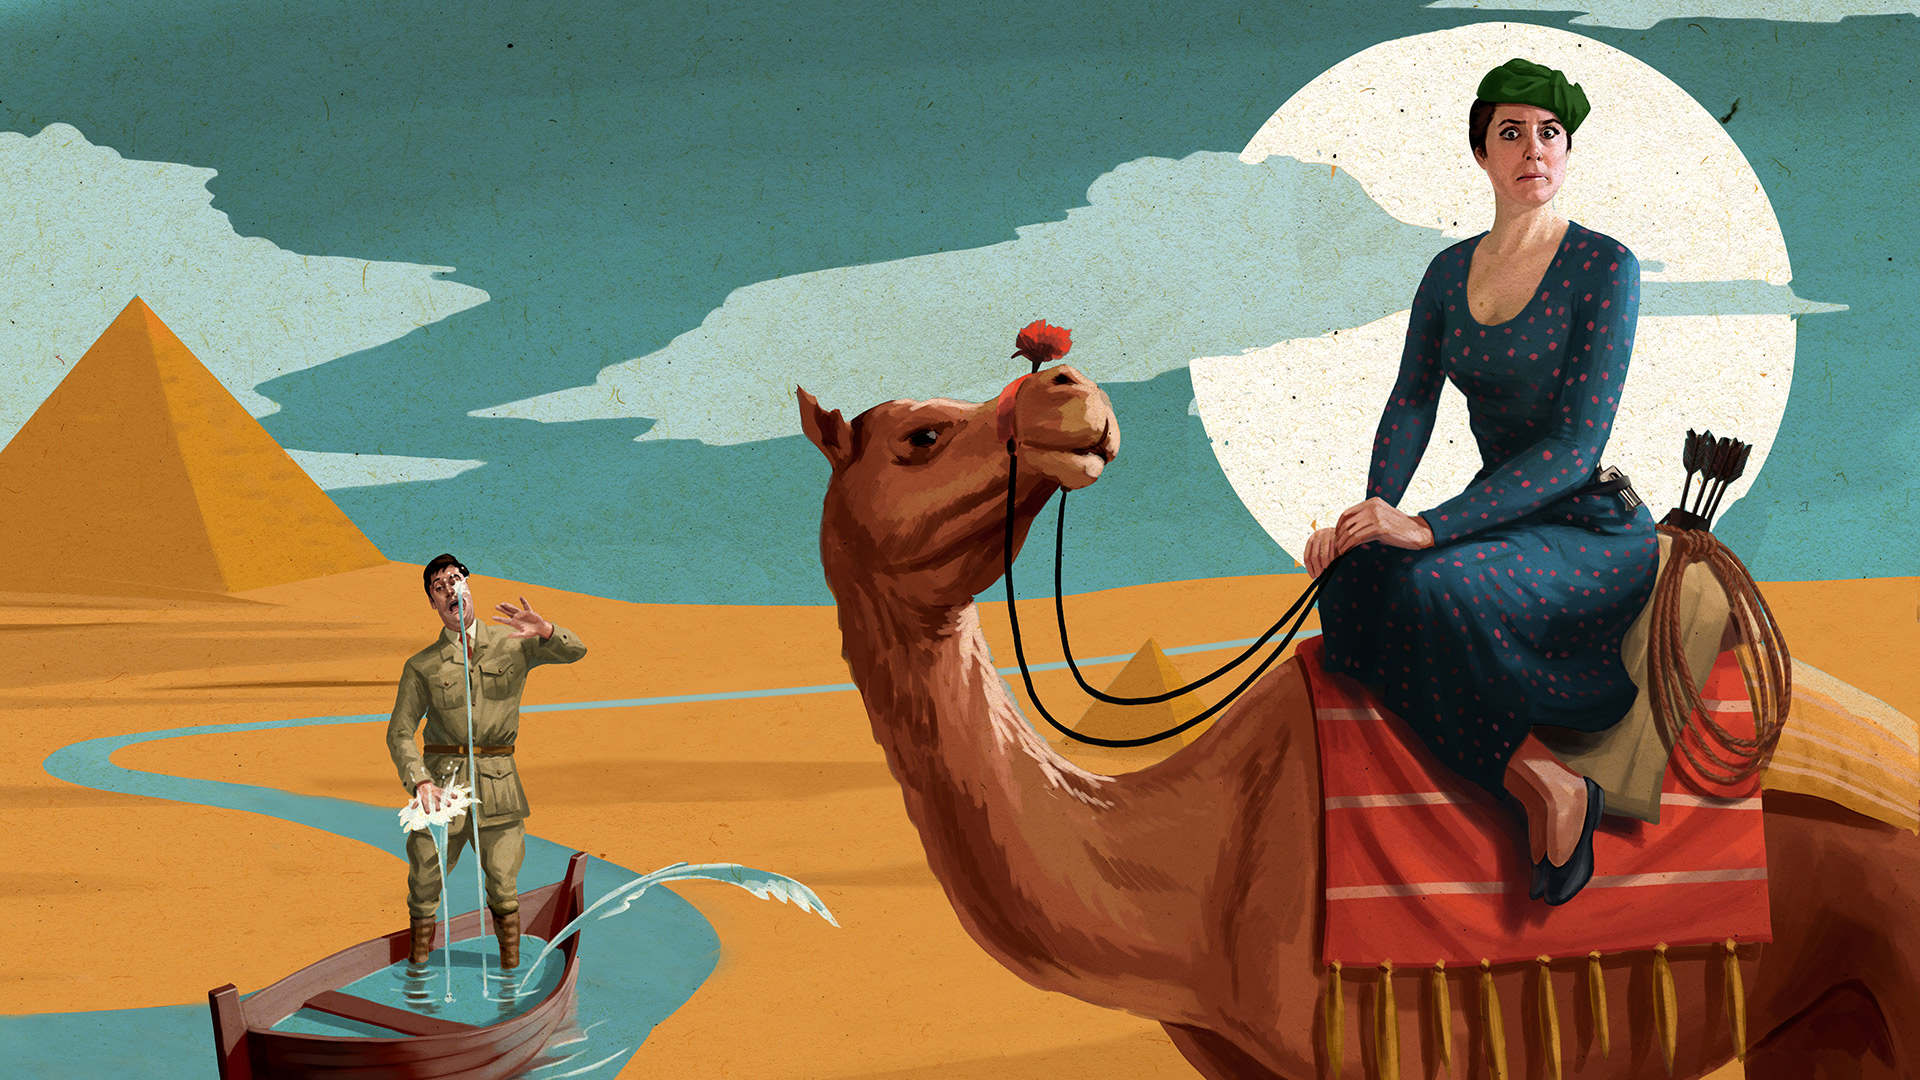 Crimes in Egypt promotional image: A woman on a camel making a funny face over a man on a boat which appears to be sinking in the desert.